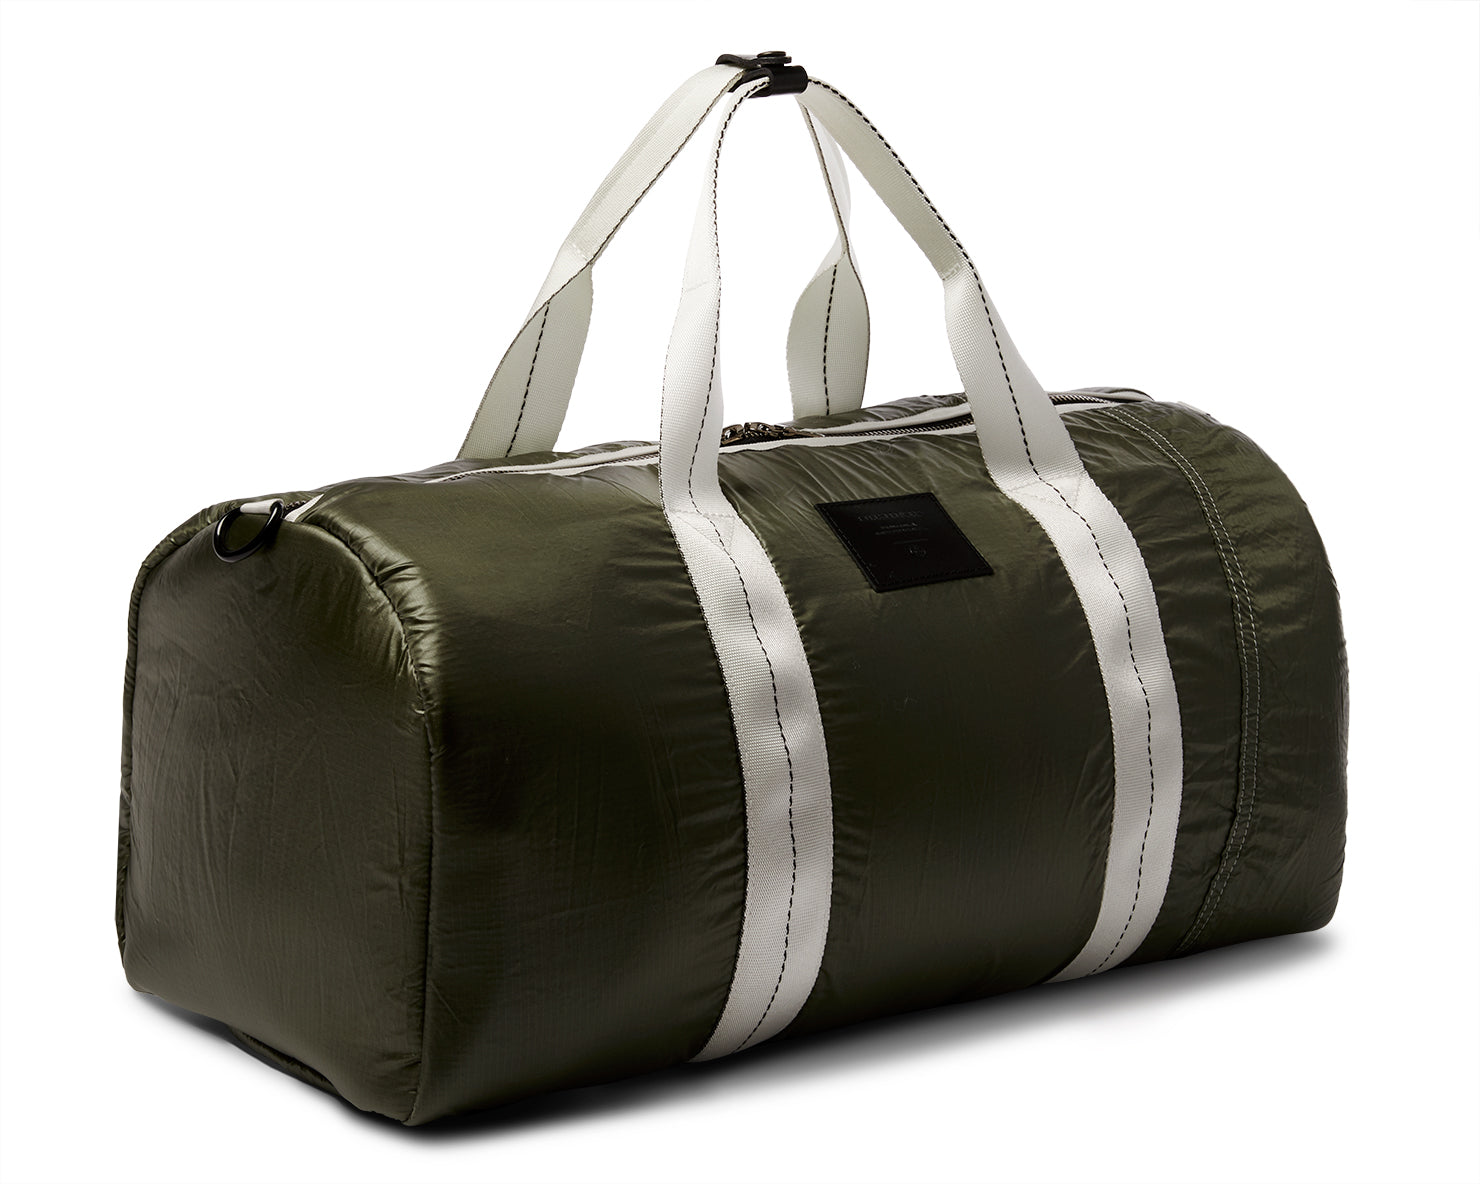 DUFFLE | KILLSPENCER® - Olive Drab Parachute